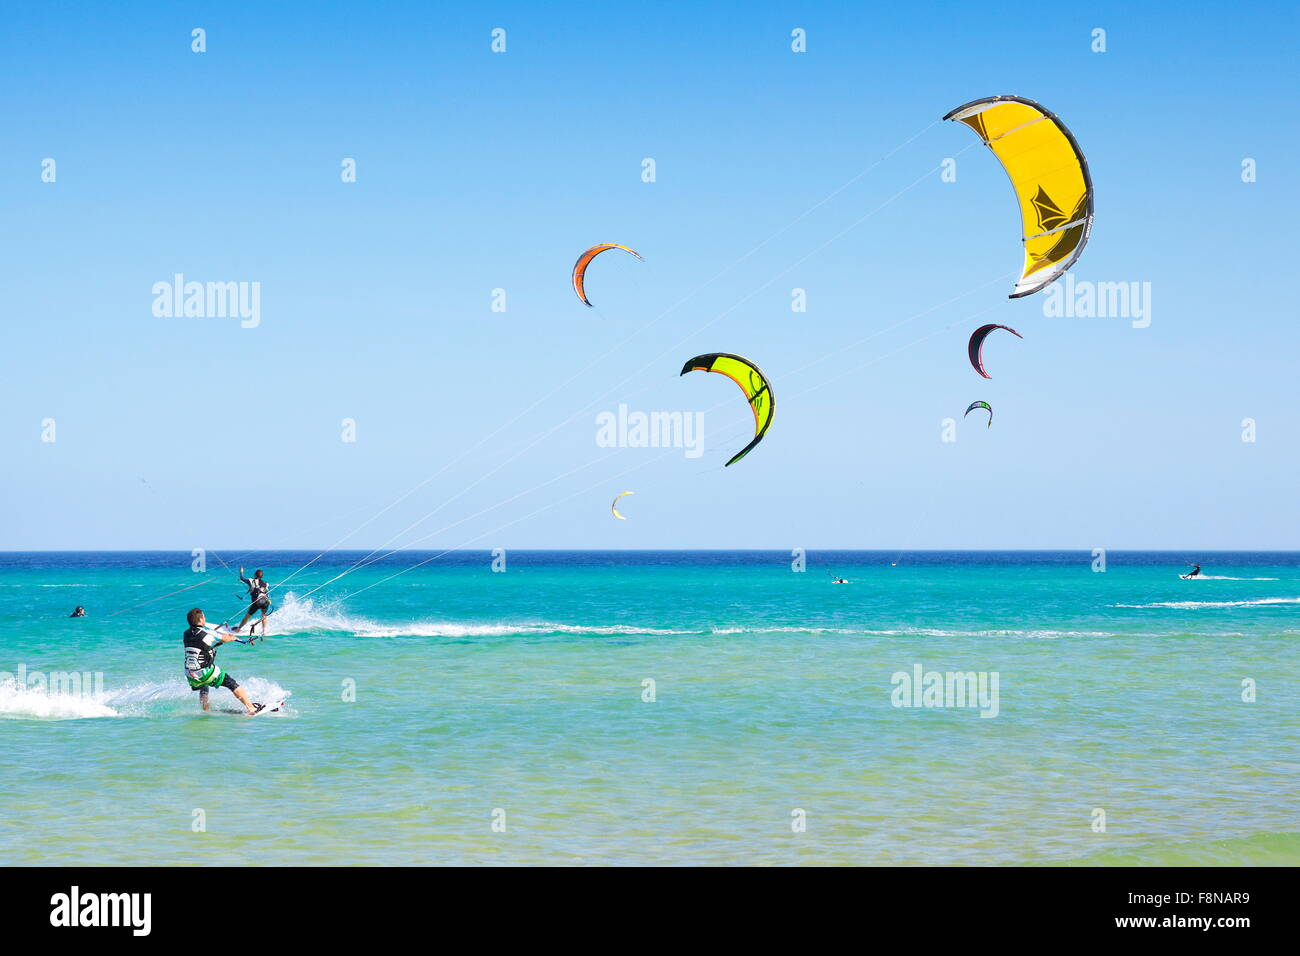 Canary Islands, Fuerteventura Island, kitesurfing at the beach near Costa Calma, Spain Stock Photo